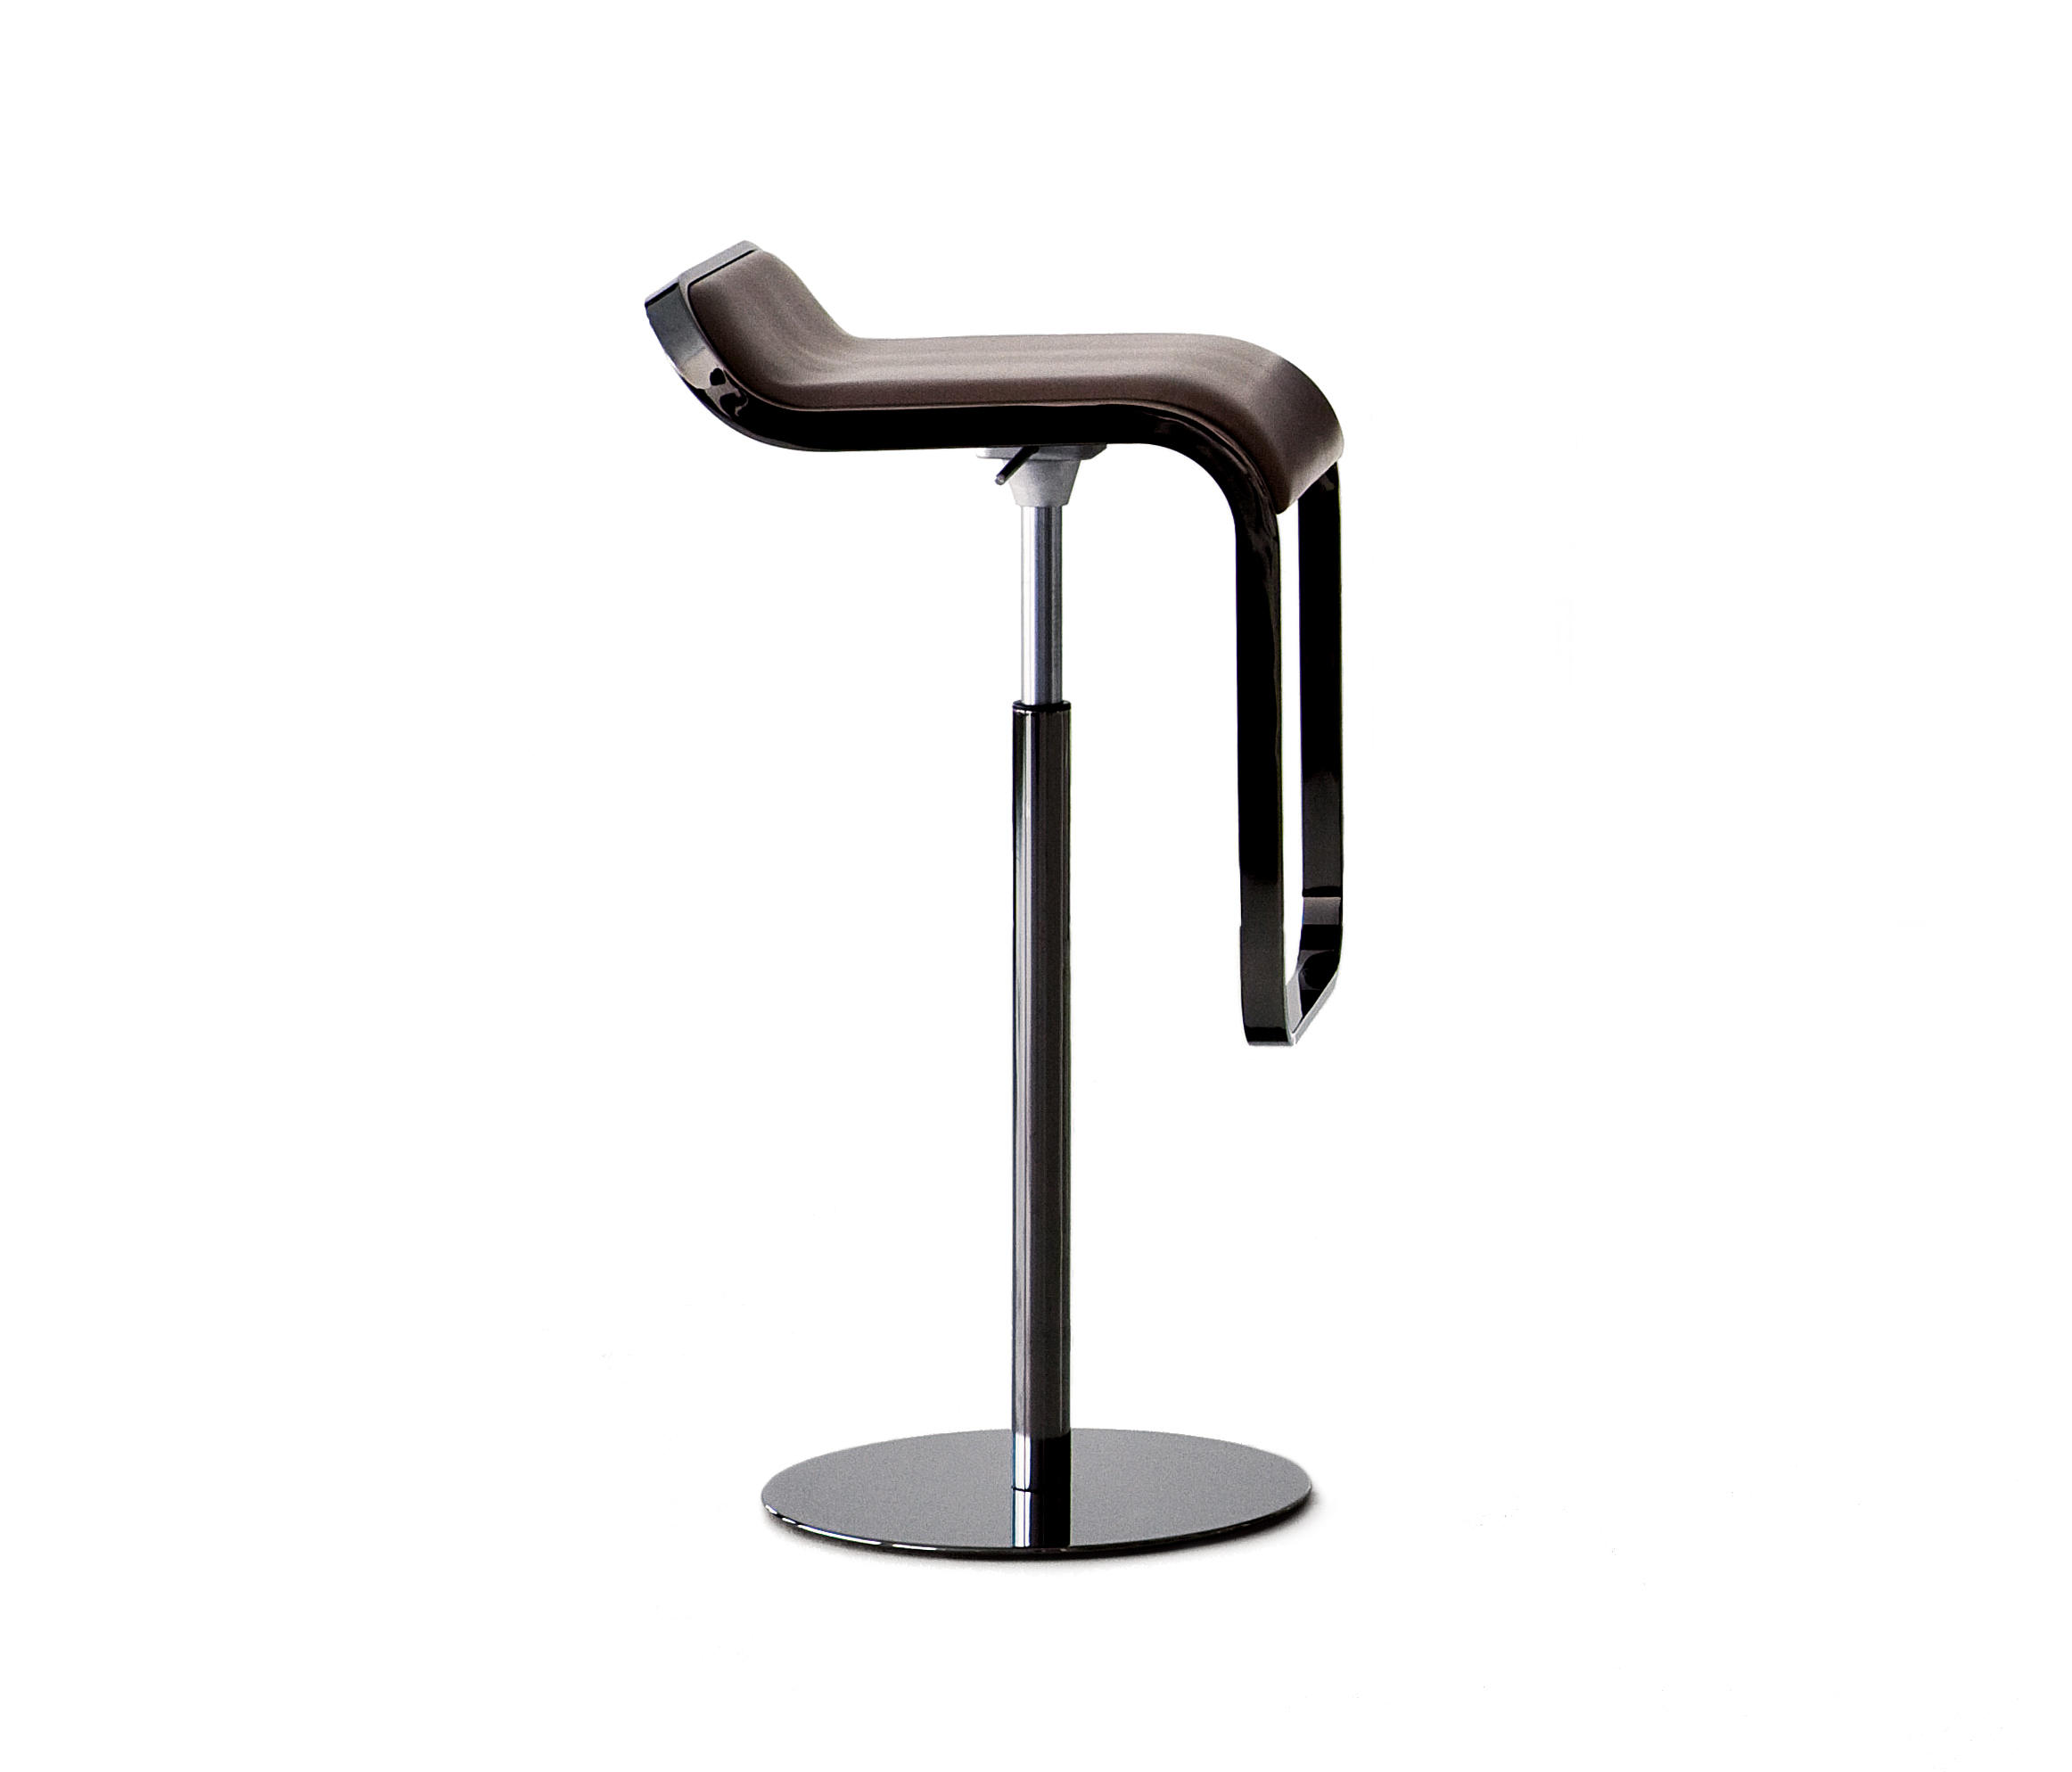 Lem bar stools from lapalma architonic for Lem lapalma